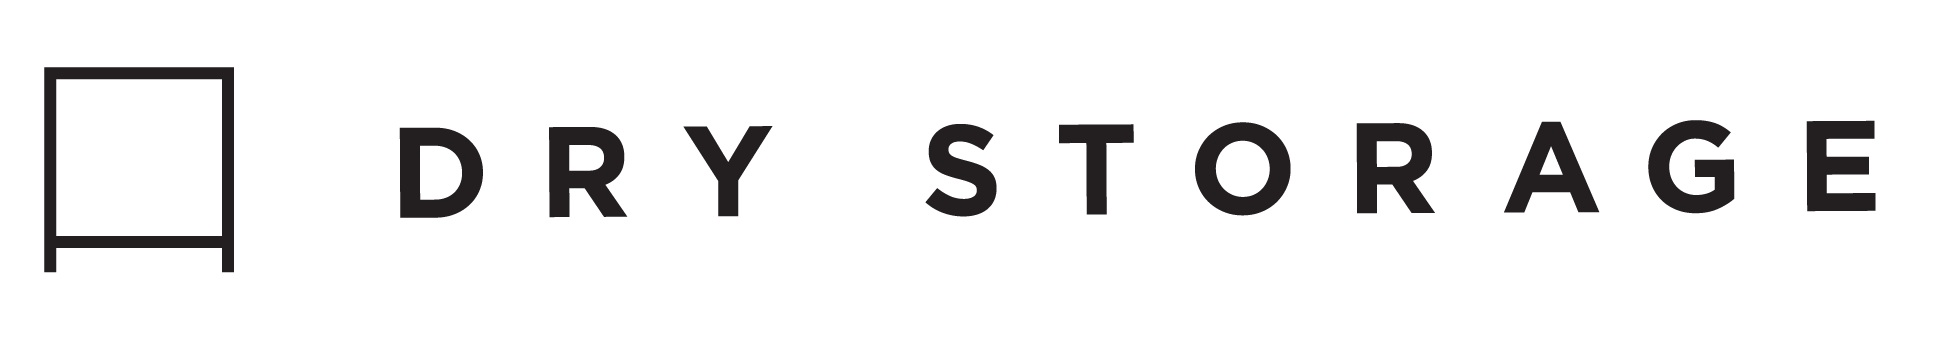 DryStorage_Logo_Horizontal_Black.jpg